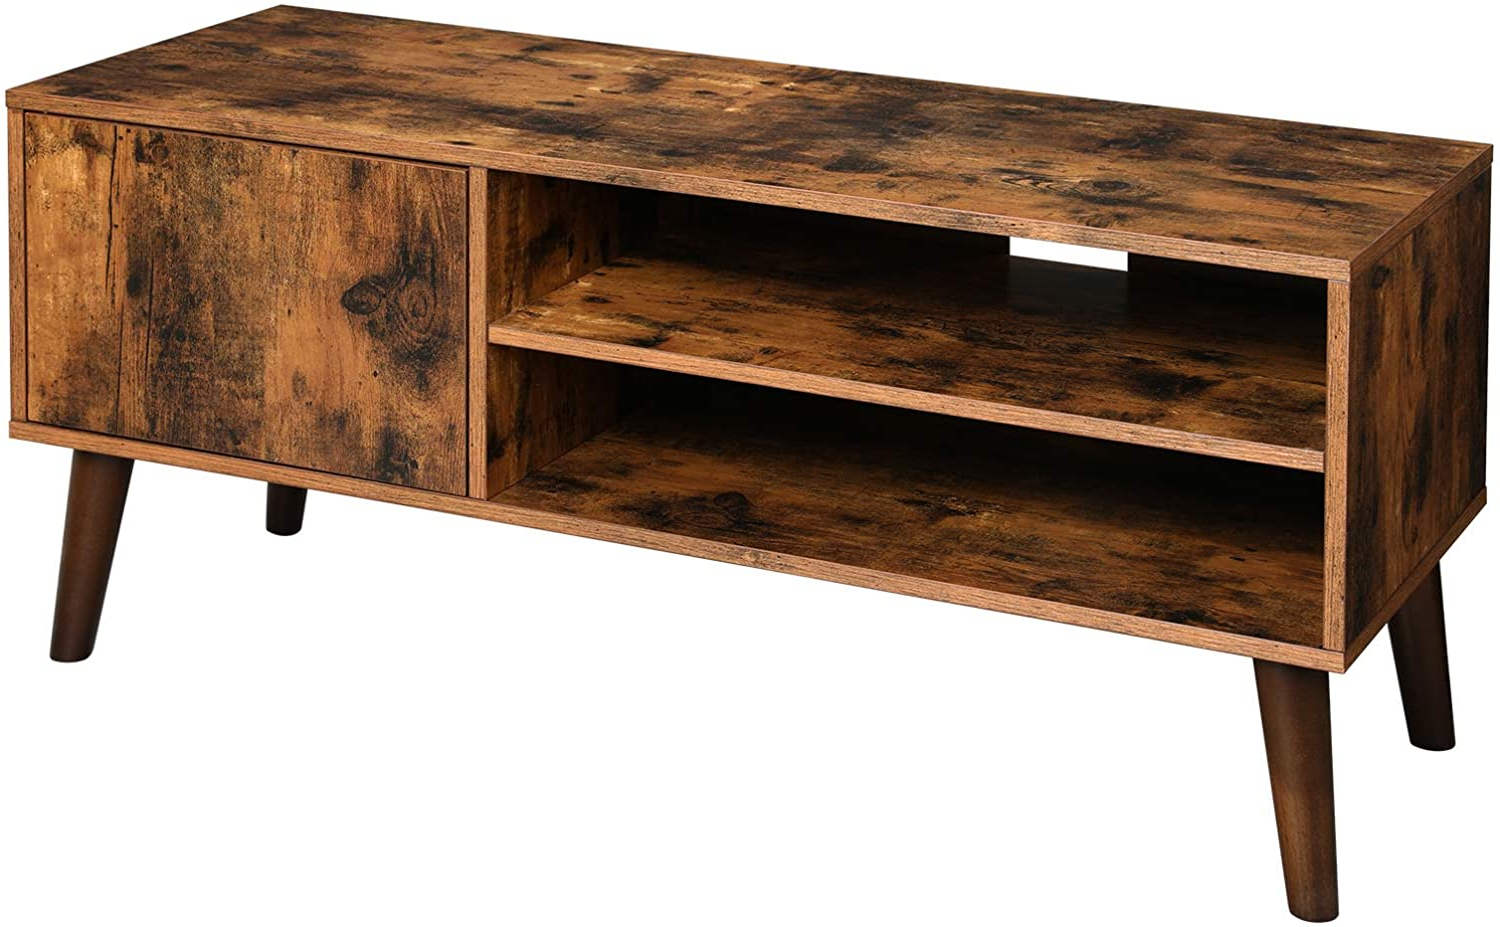 """Tv Stand, Tv Console For Tvs Up To 43 Inches, Mid Century Intended For Newest Mathew Tv Stands For Tvs Up To 43"""" (View 21 of 25)"""